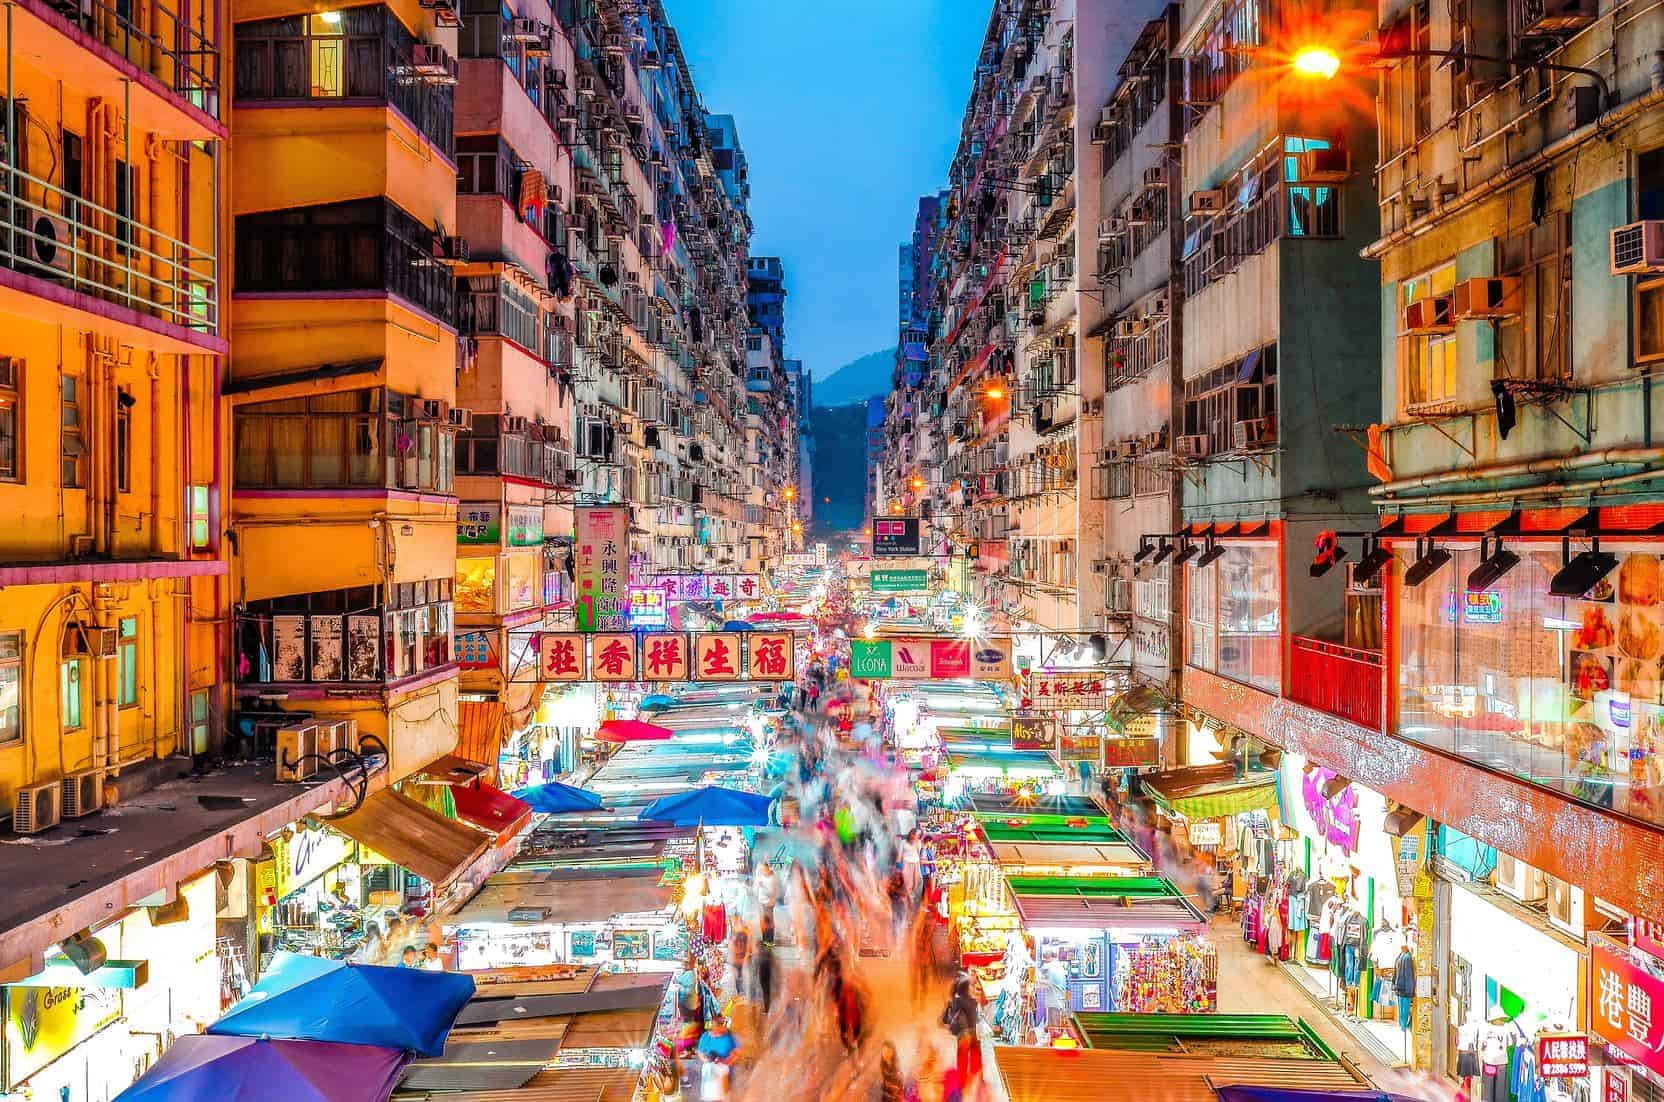 Hong Kong Night Market by Francois Hurtaud.